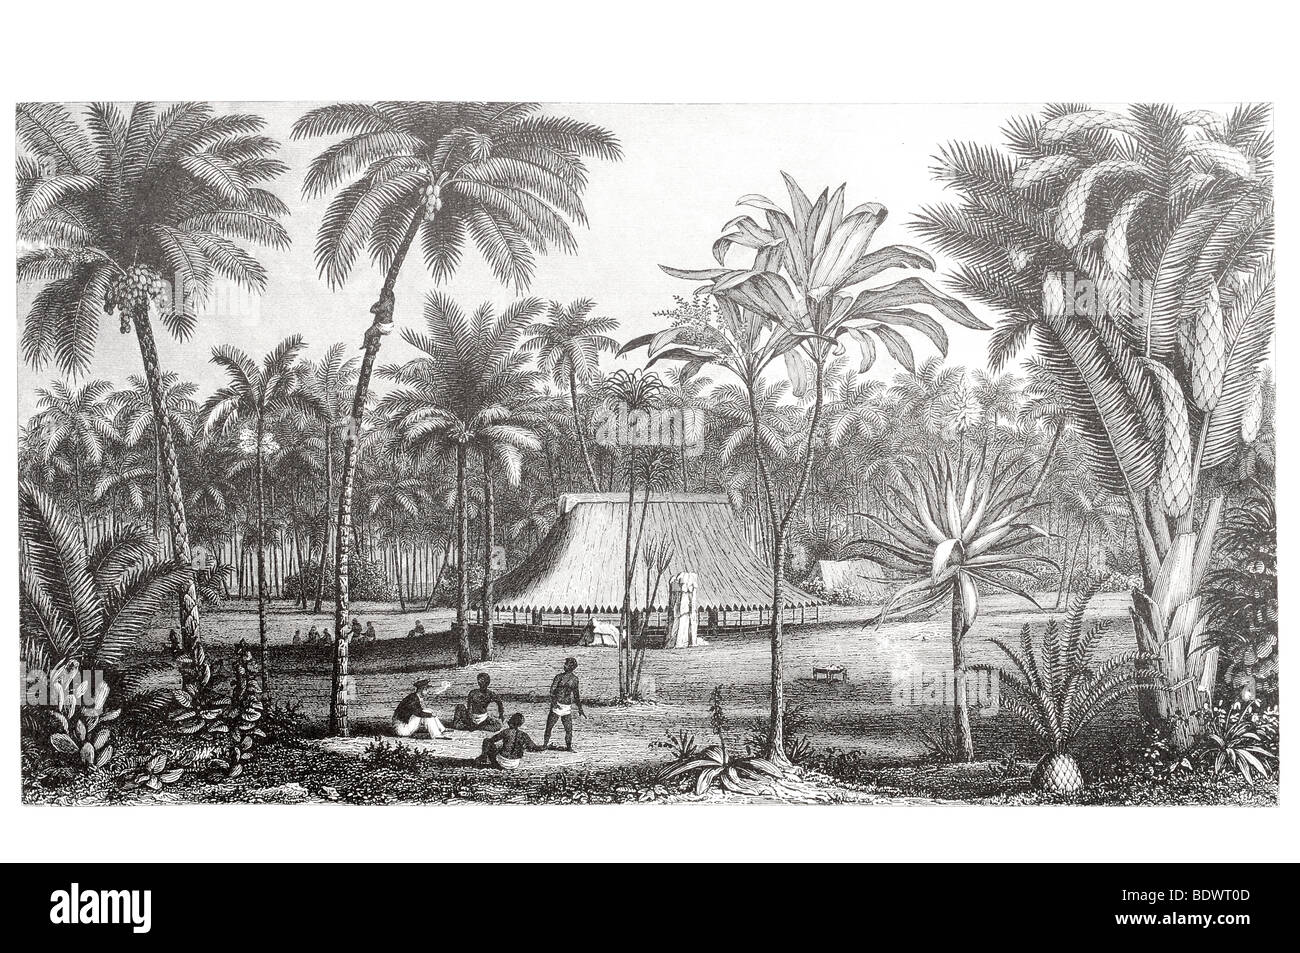 habitat reproductive parts woody monocots palms and cycads tribe hut shelter paradise home native - Stock Image